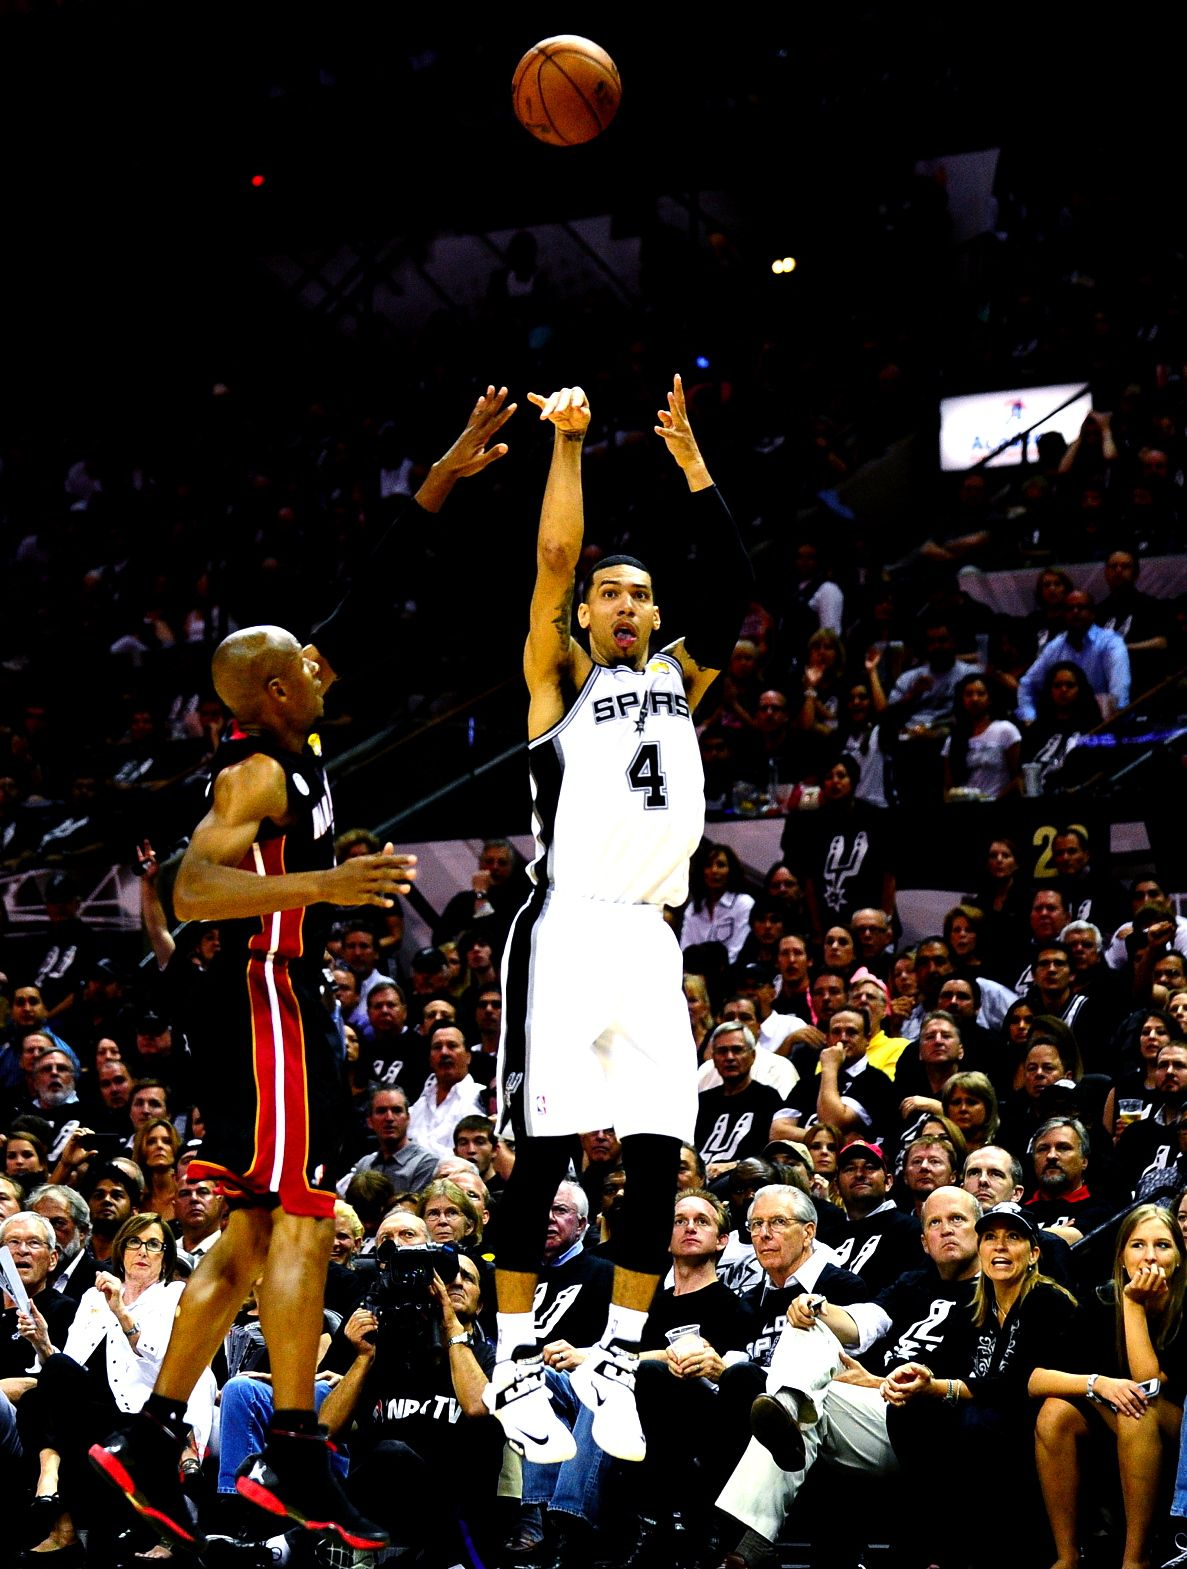 Danny Green shooting the record breaking shot in the NBA finals ...